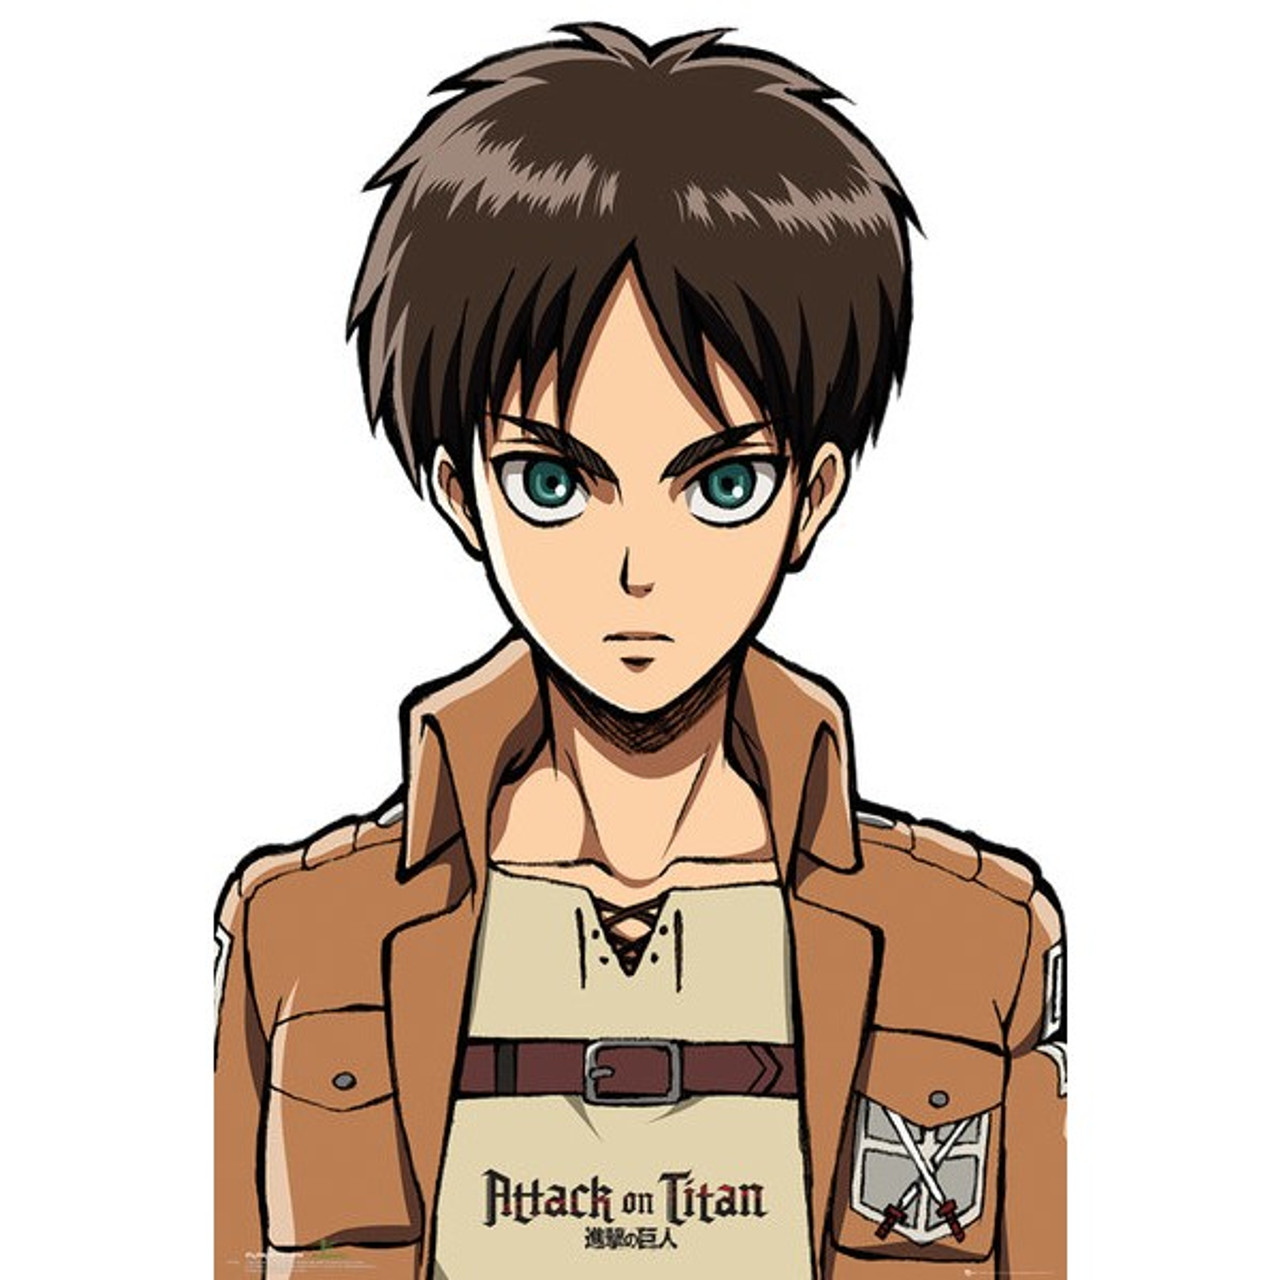 Attack On Titan-Eren Jäger-Poster 61cm x 91cm-LAMINATED Available-P5045